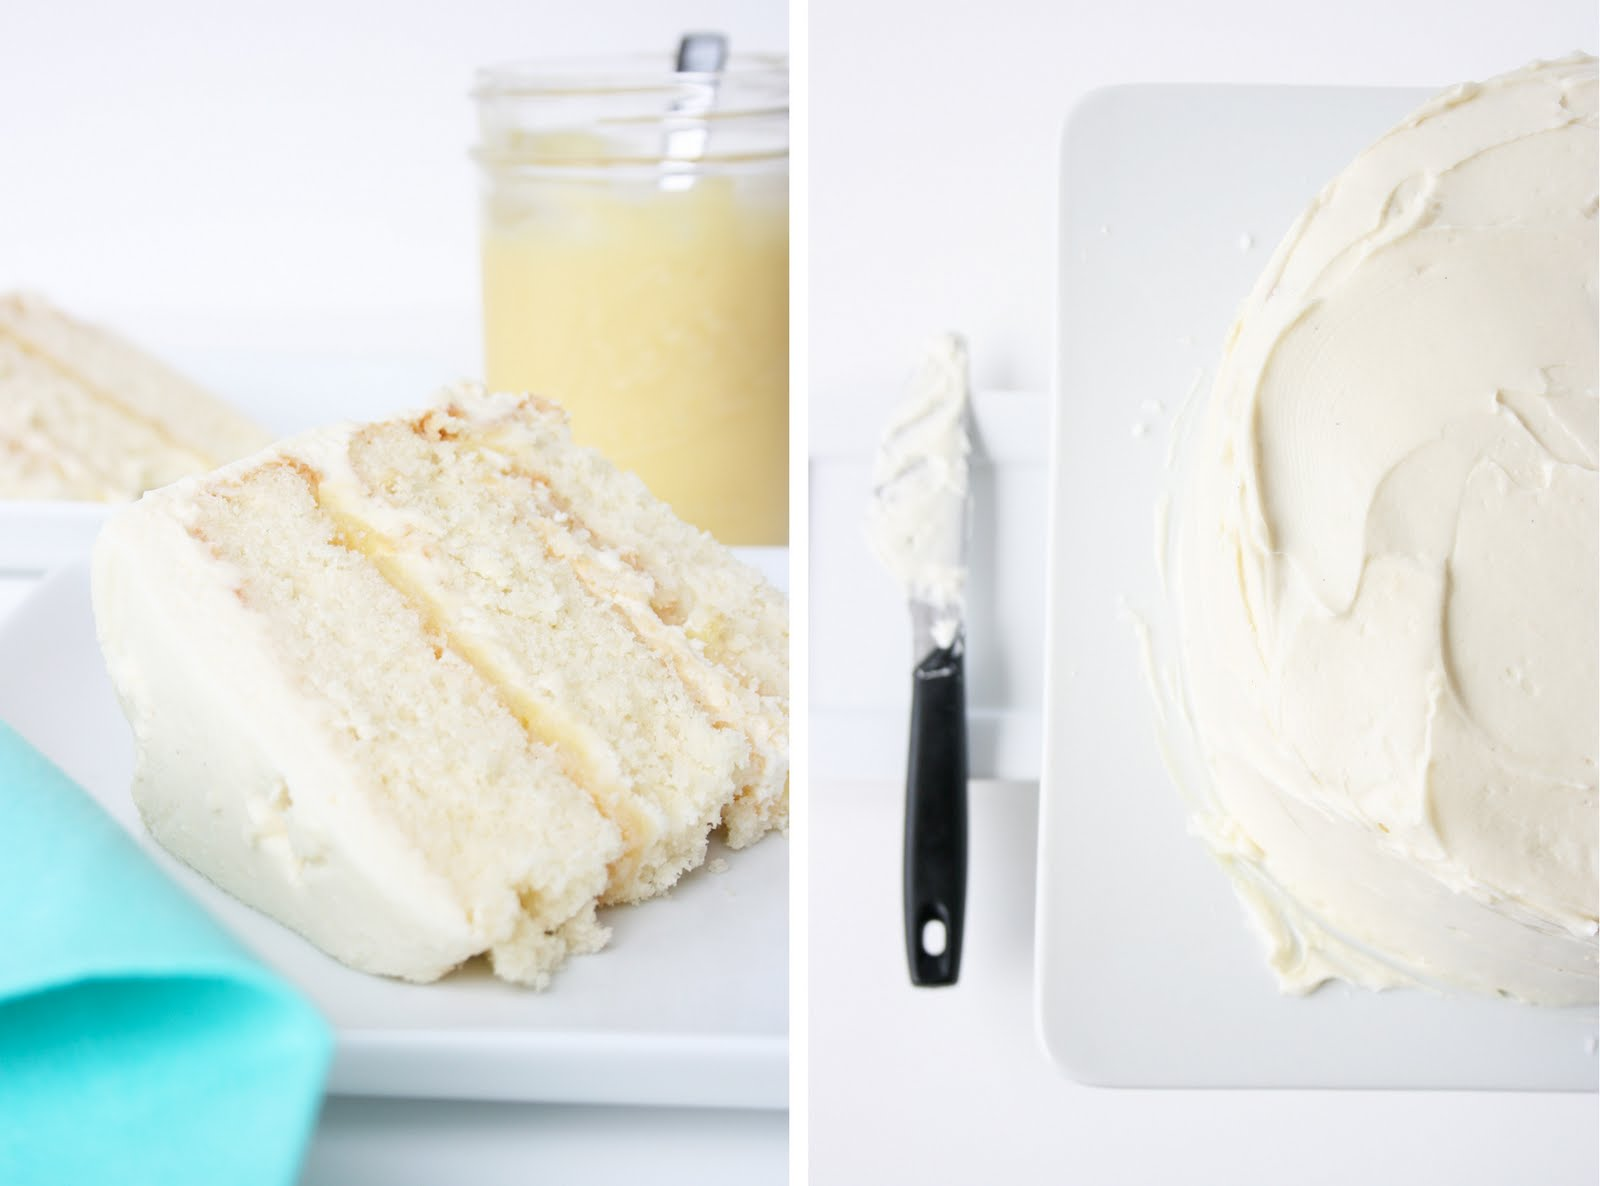 stephmodo Coconut Cake Lemon Curd Fluffy Cream Cheese Frosting